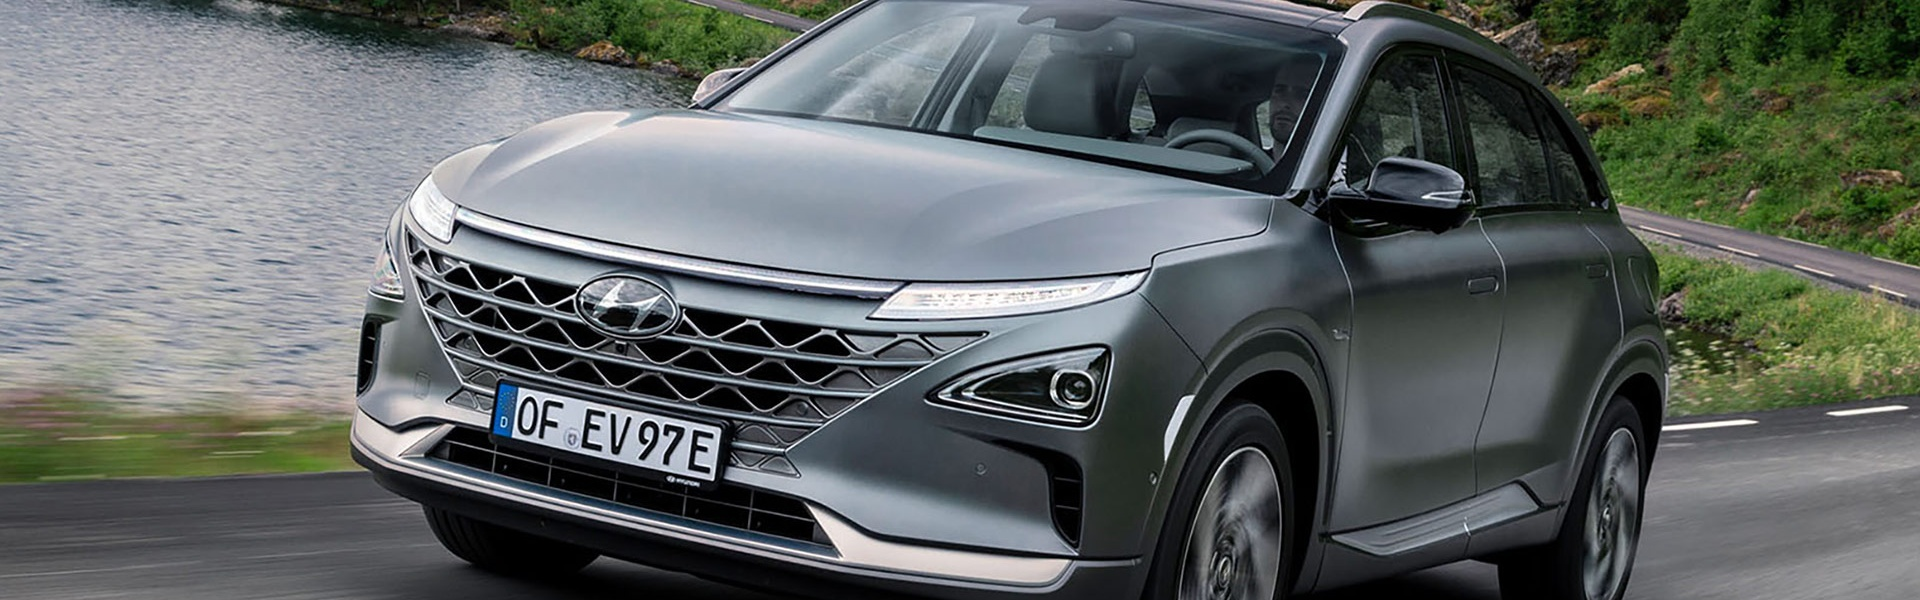 hyundai-nexo-sep-2018-idea-award-e2e.jpg